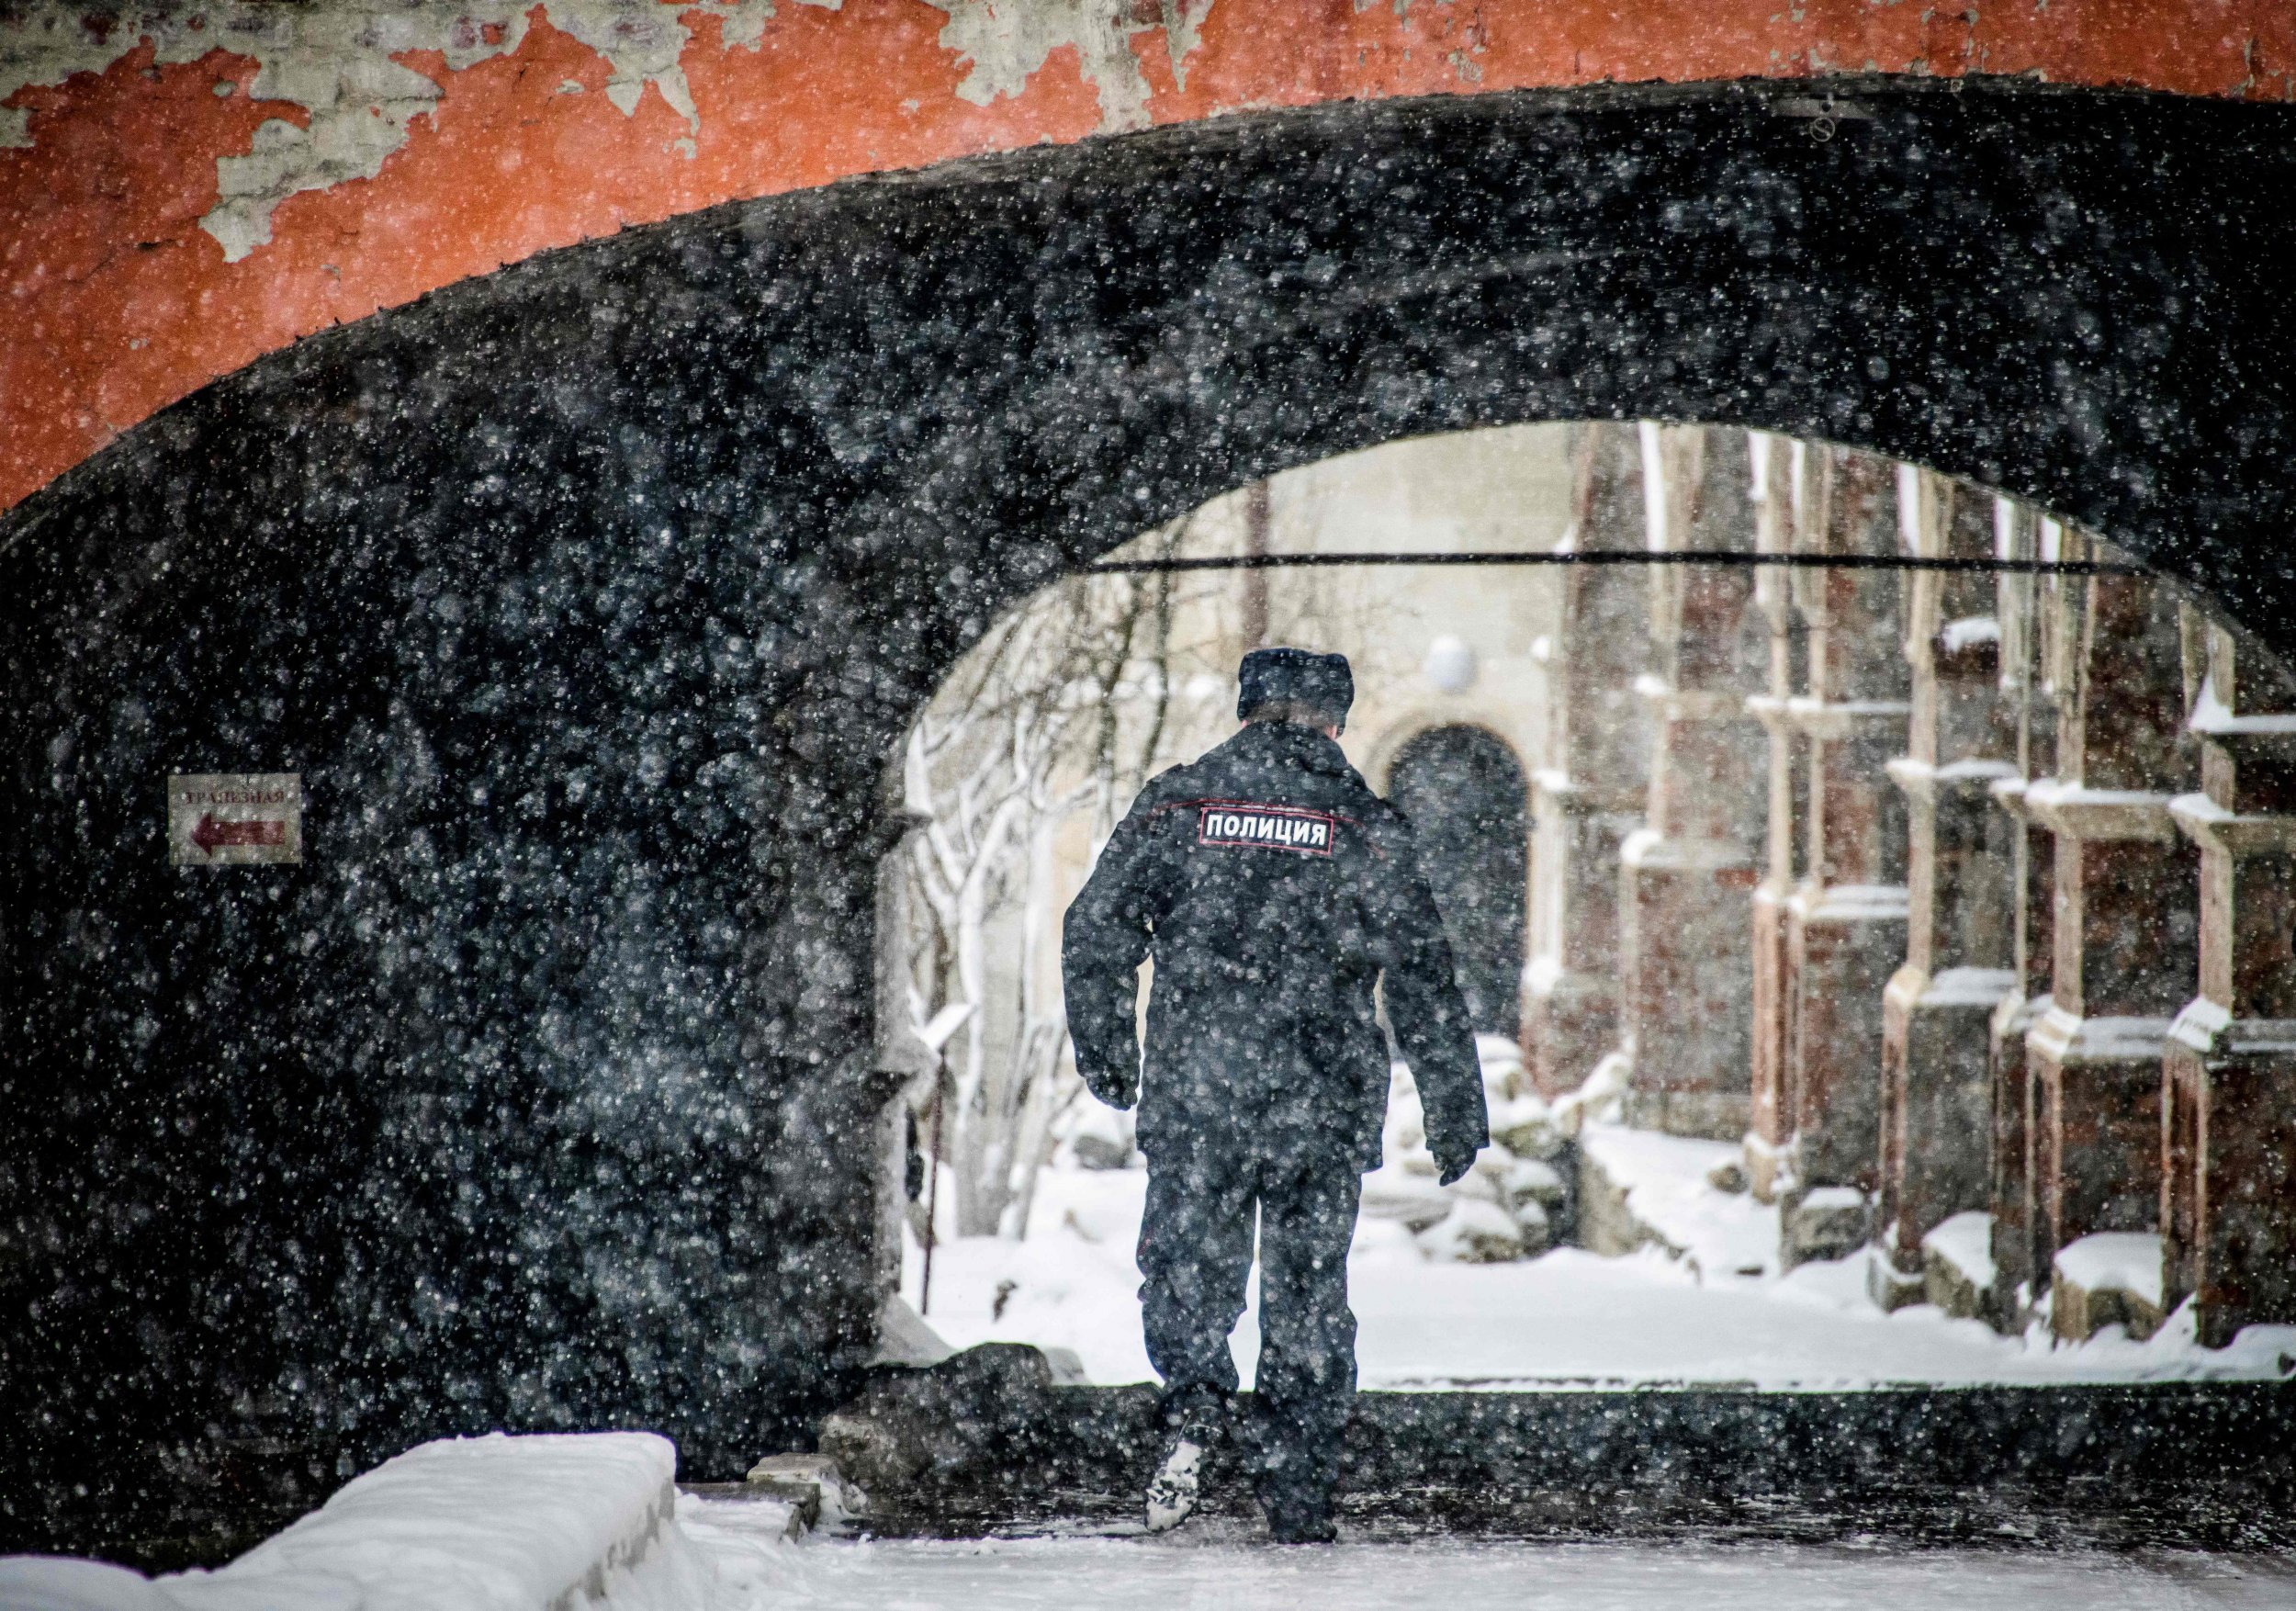 03_02_Russian_police